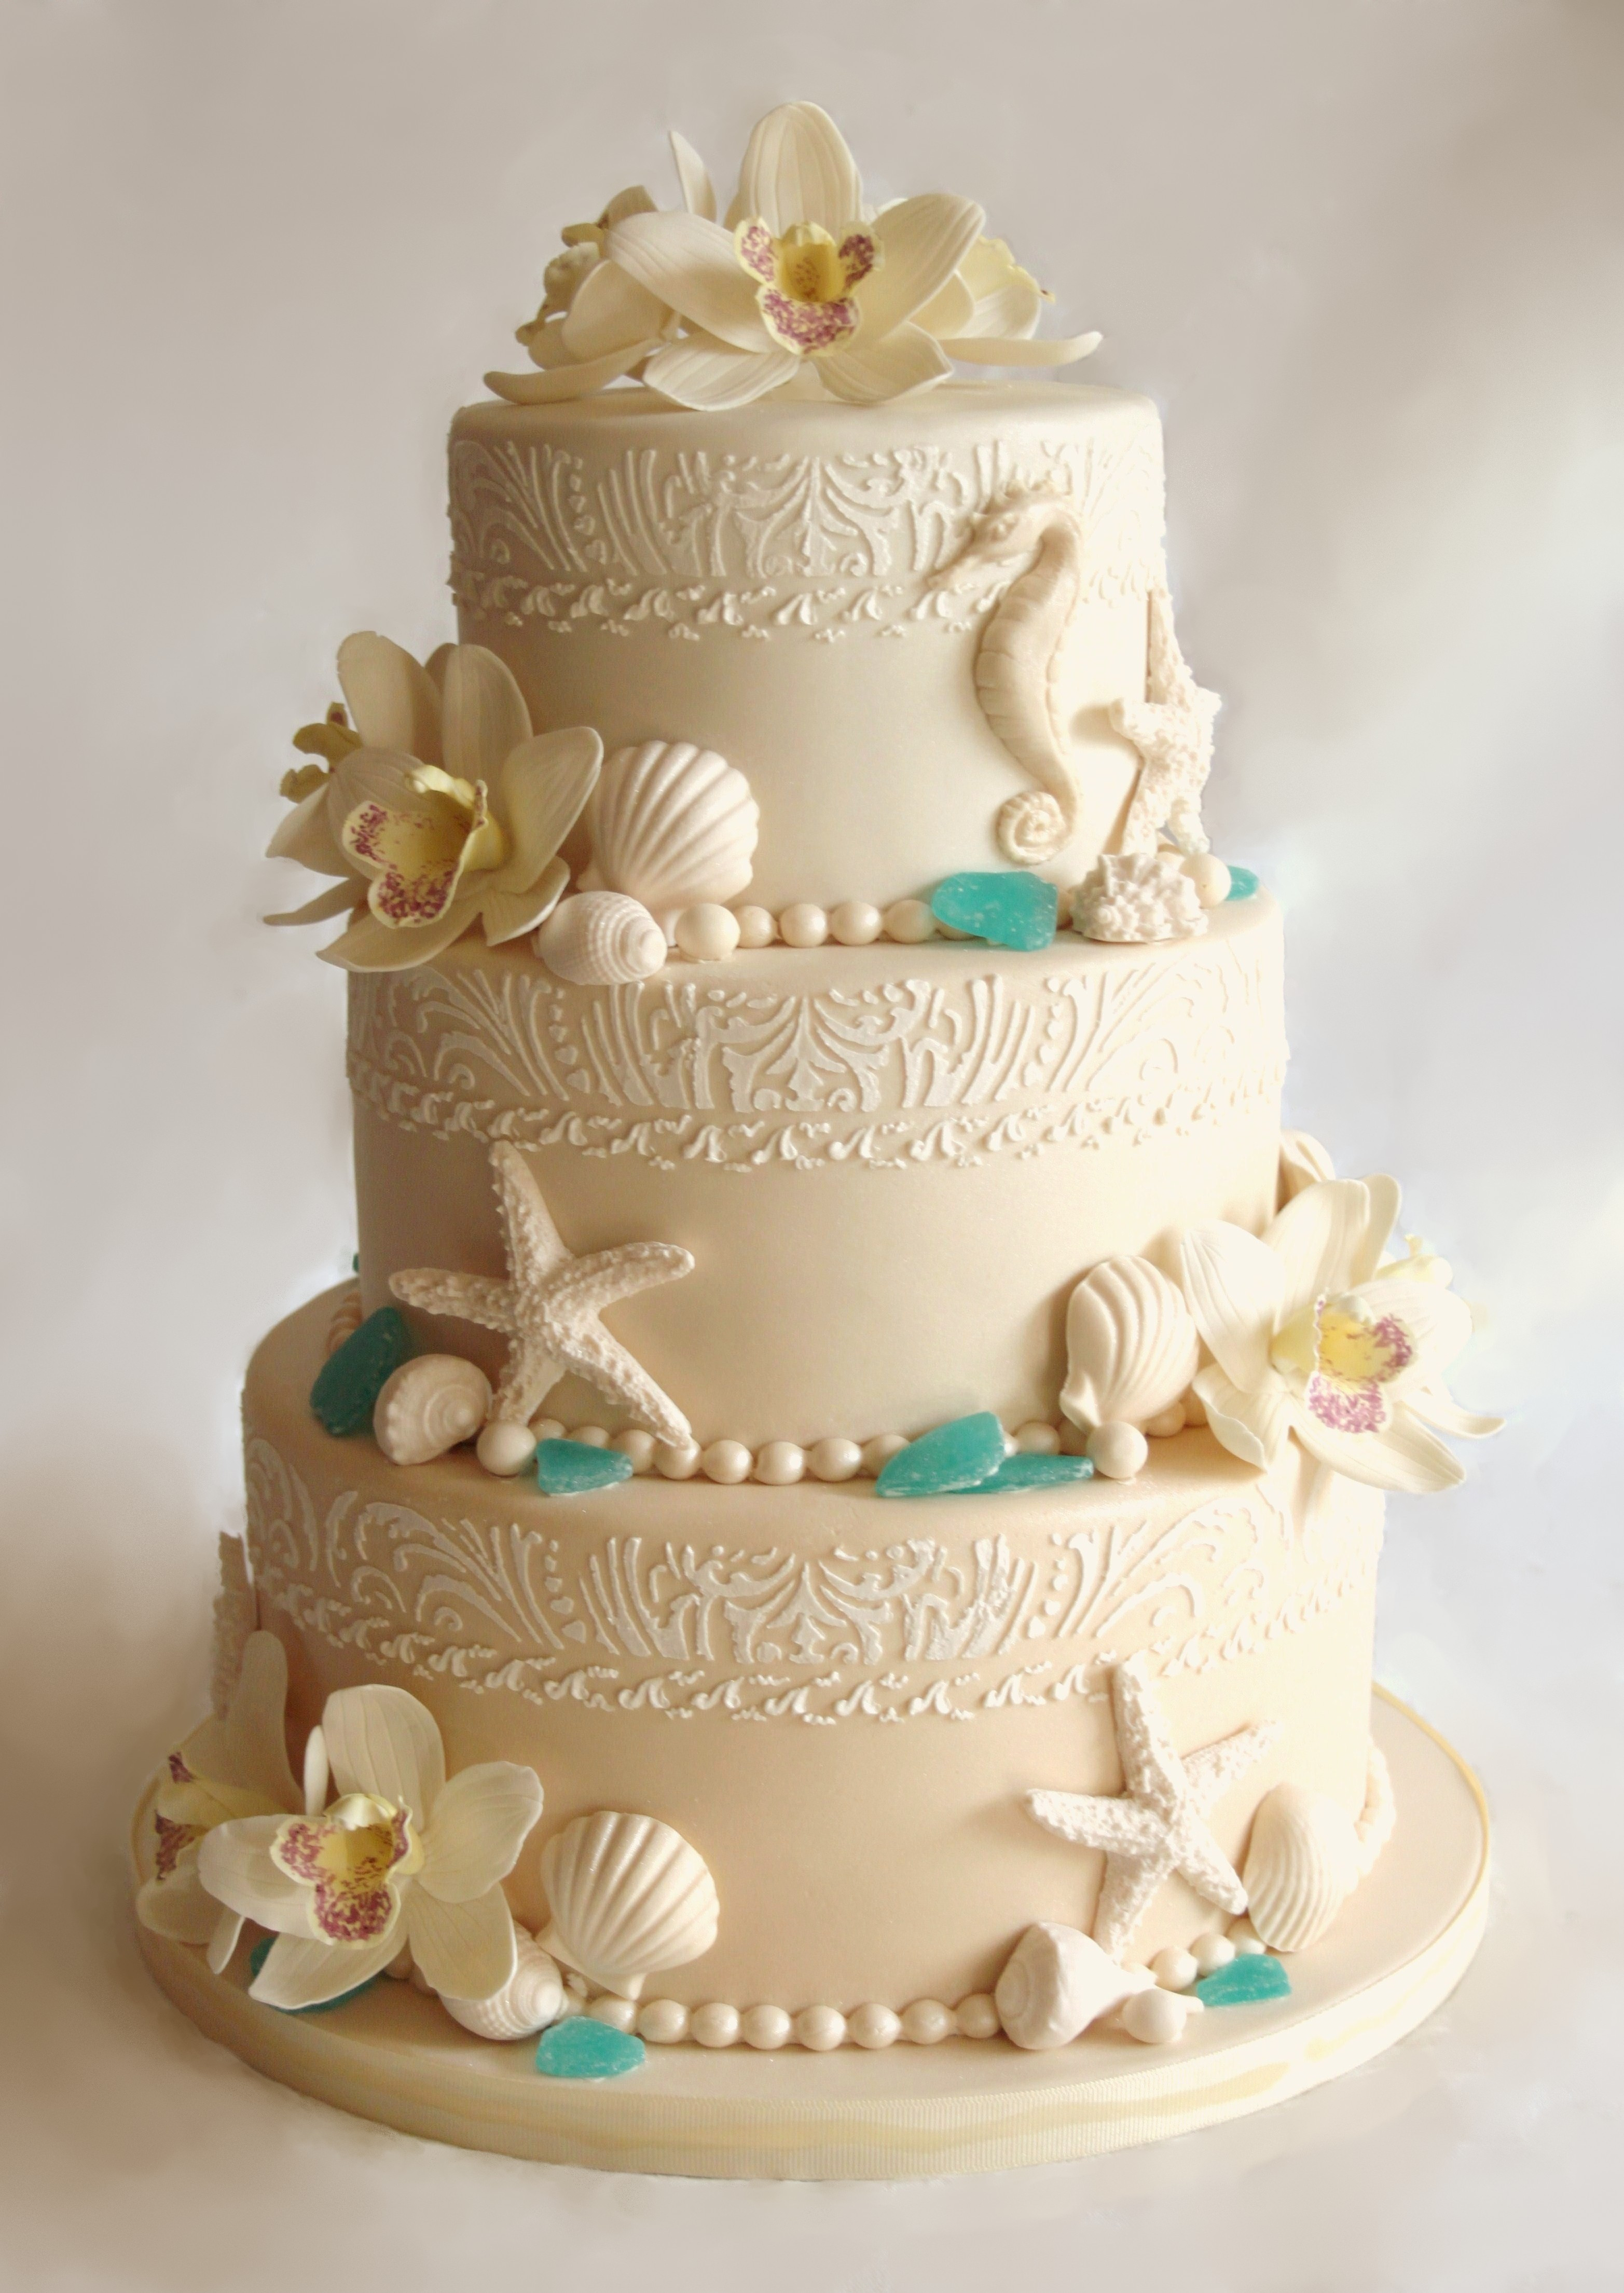 Beach Wedding Cakes  30 ULTIMATE WEDDING CAKES TO STEAL THE SHOW